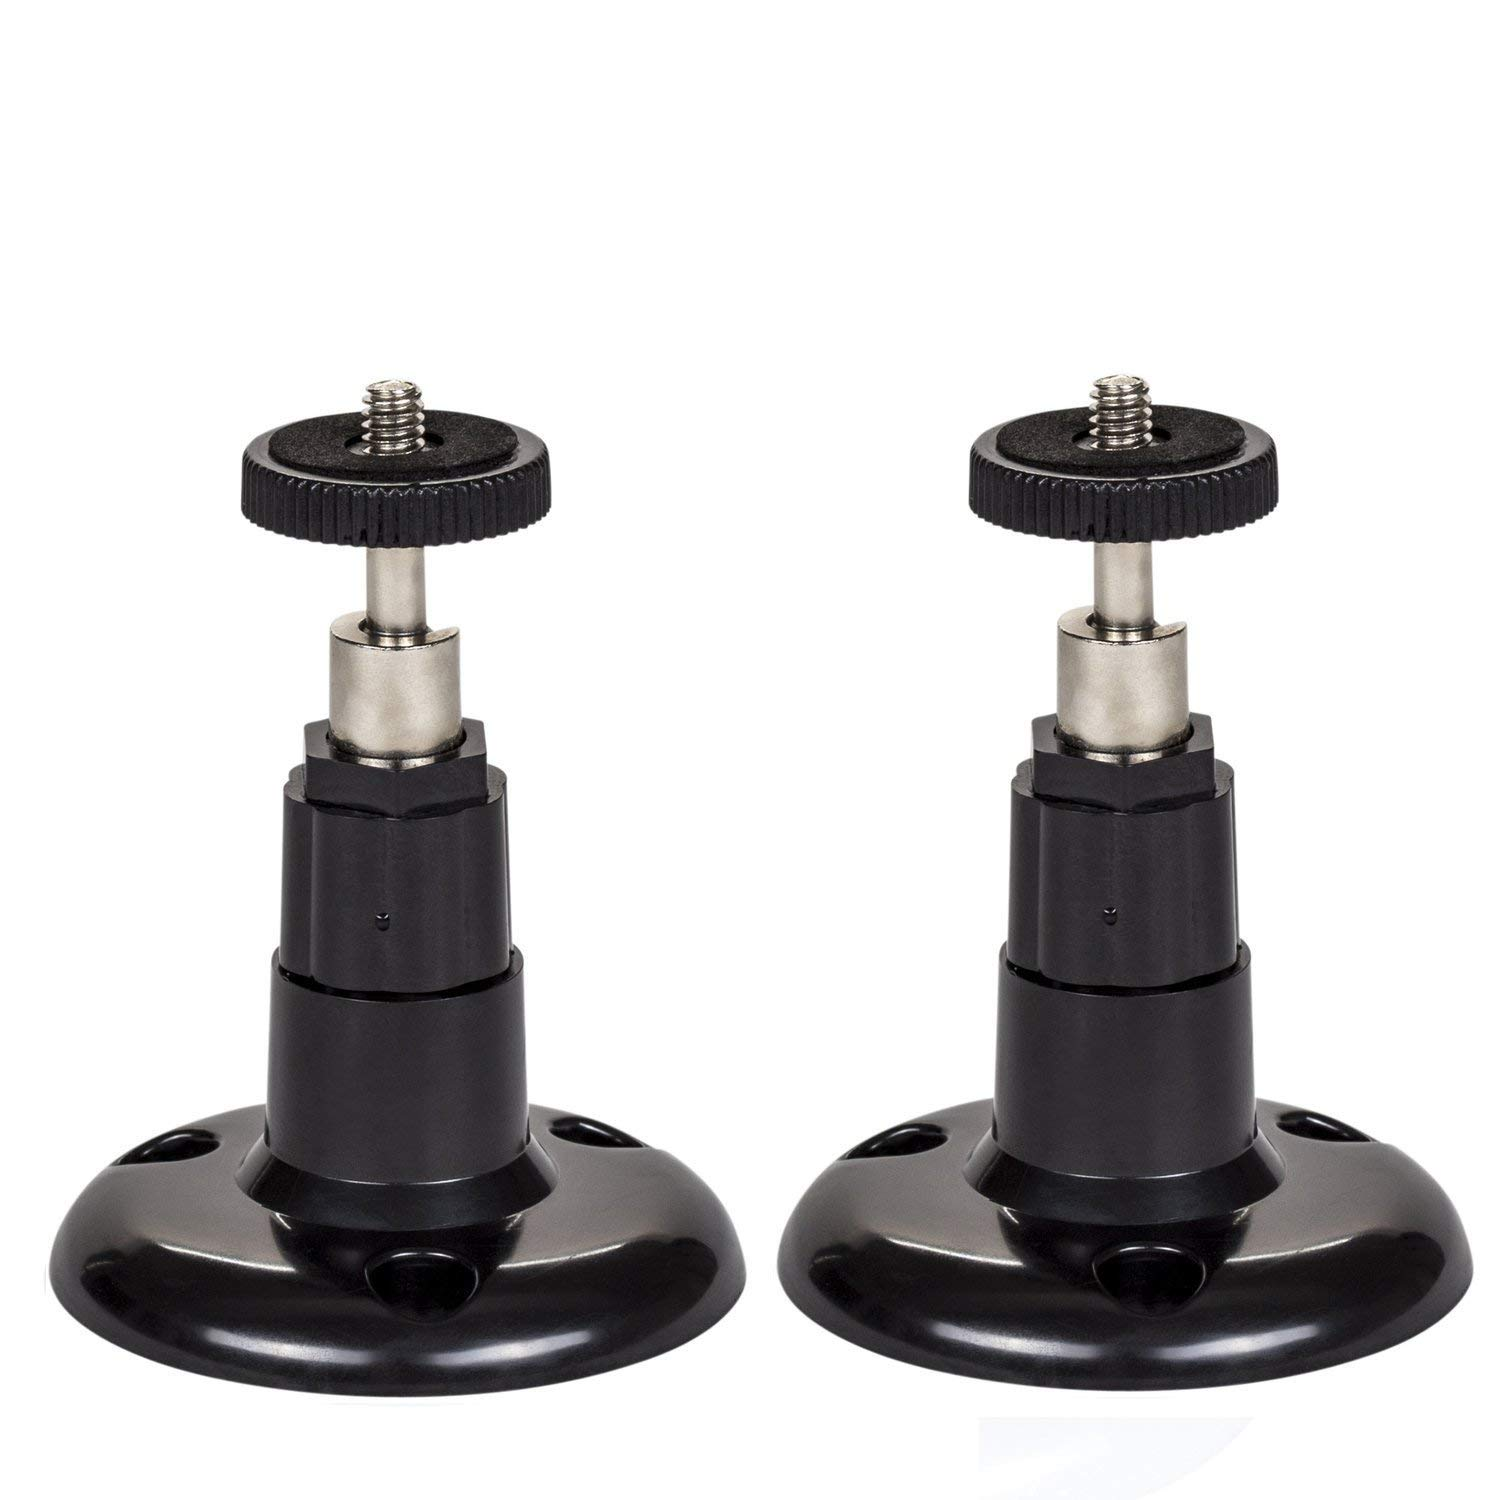 New Security Wall Mount- Adjustable Indoor/Outdoor Mount Compatible with Arlo, Arlo Pro, Arlo Pro 2 and Other Compatible Models